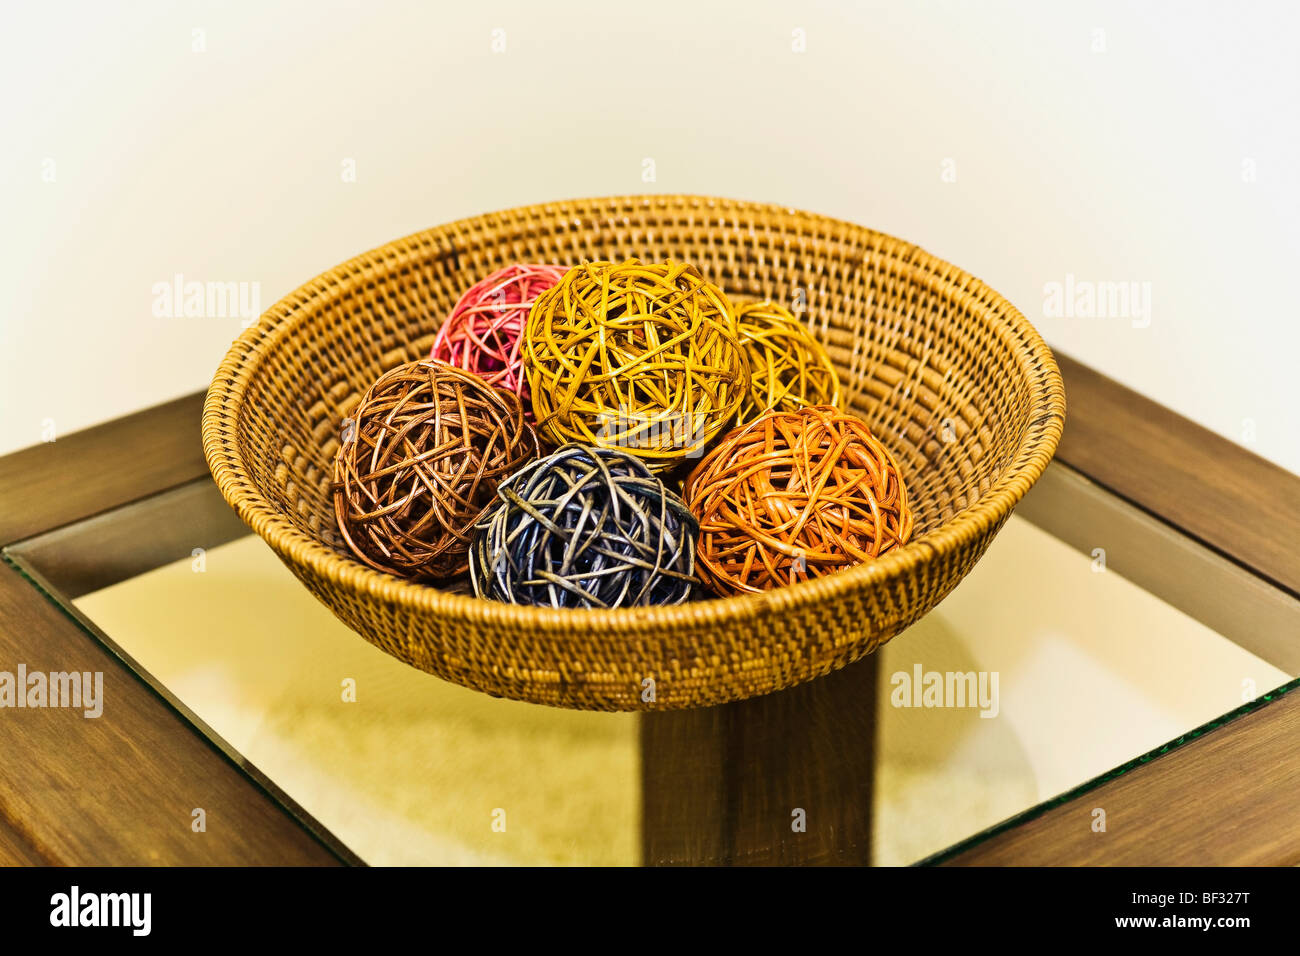 Decorative balls in a wicker basket on a table - Stock Image